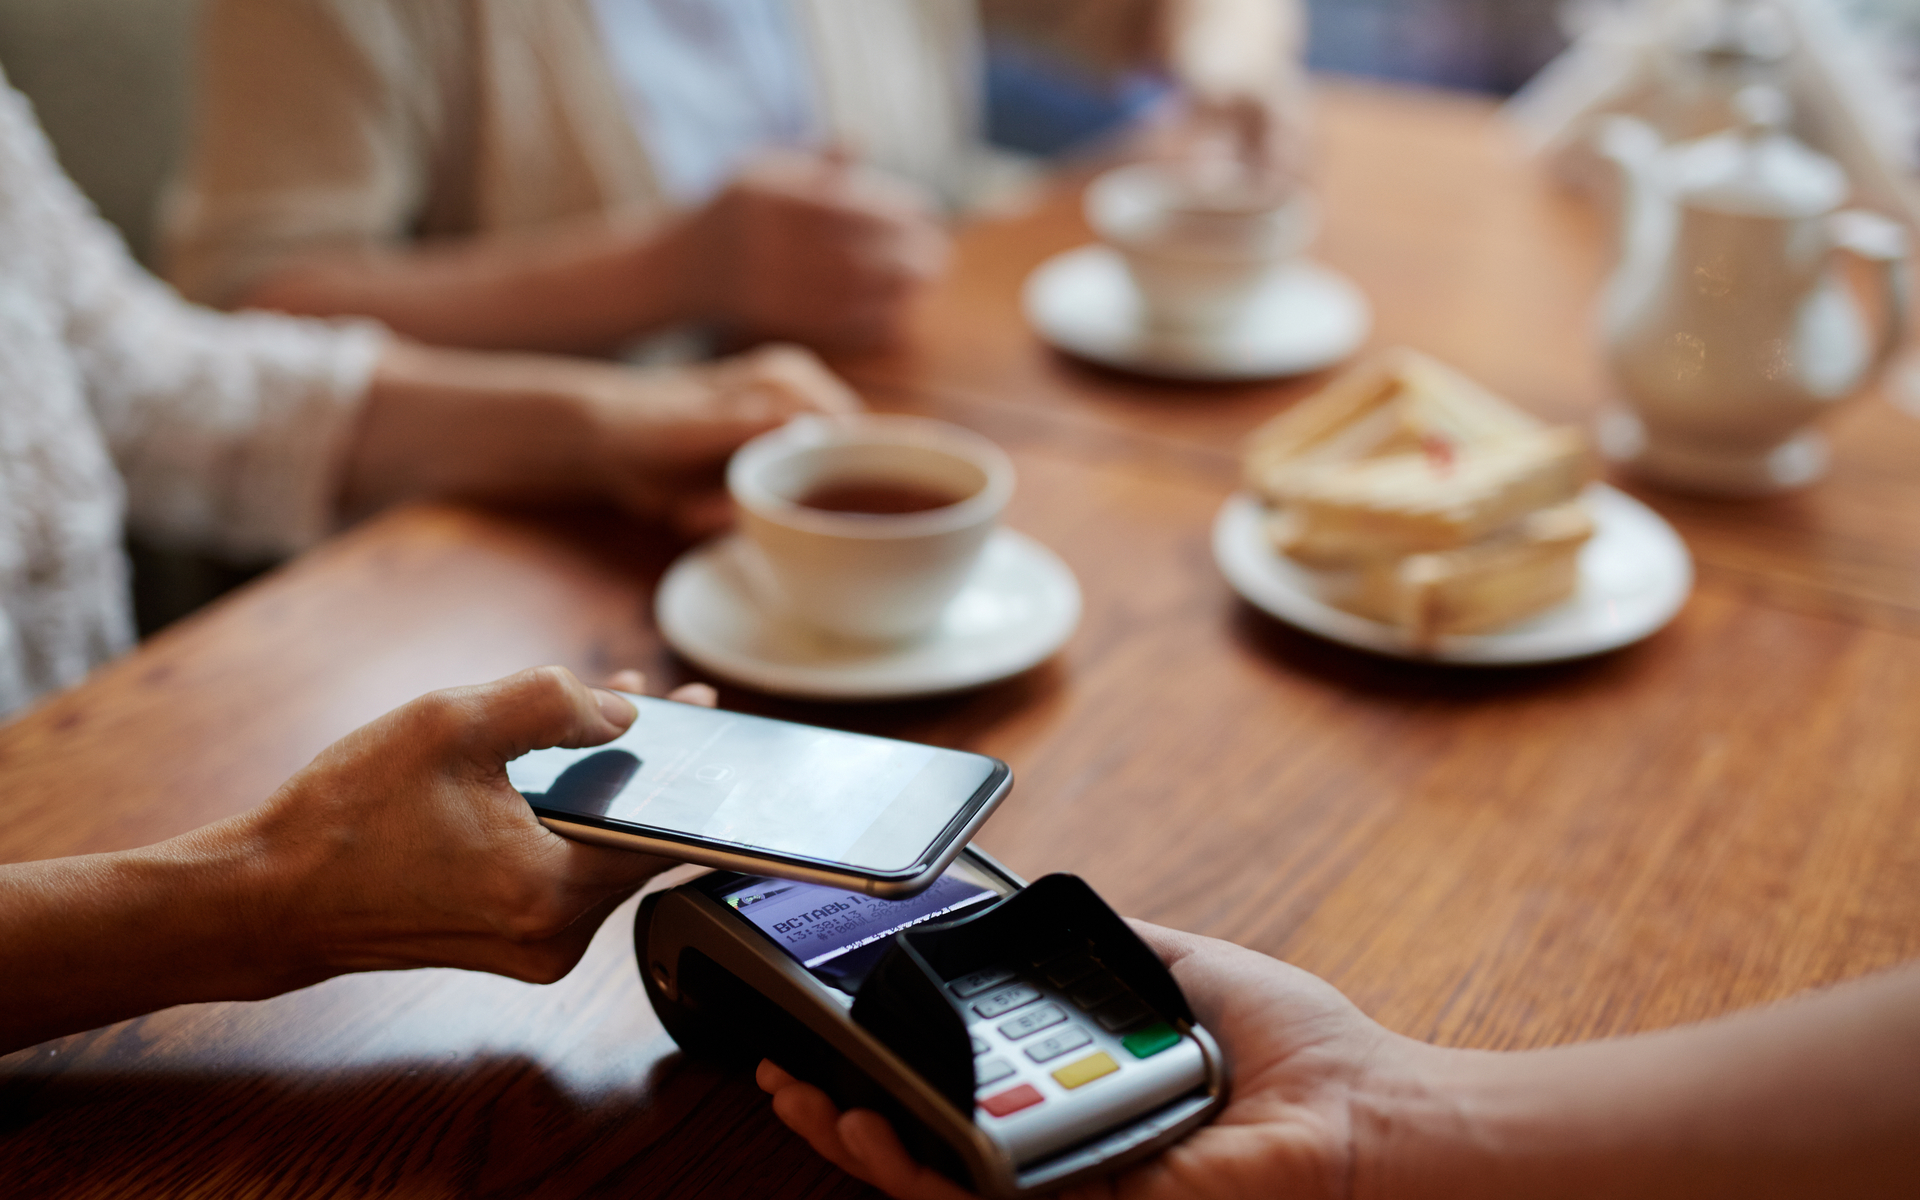 Mobile Payments is a Big Market — And It's About to get Much Bigger